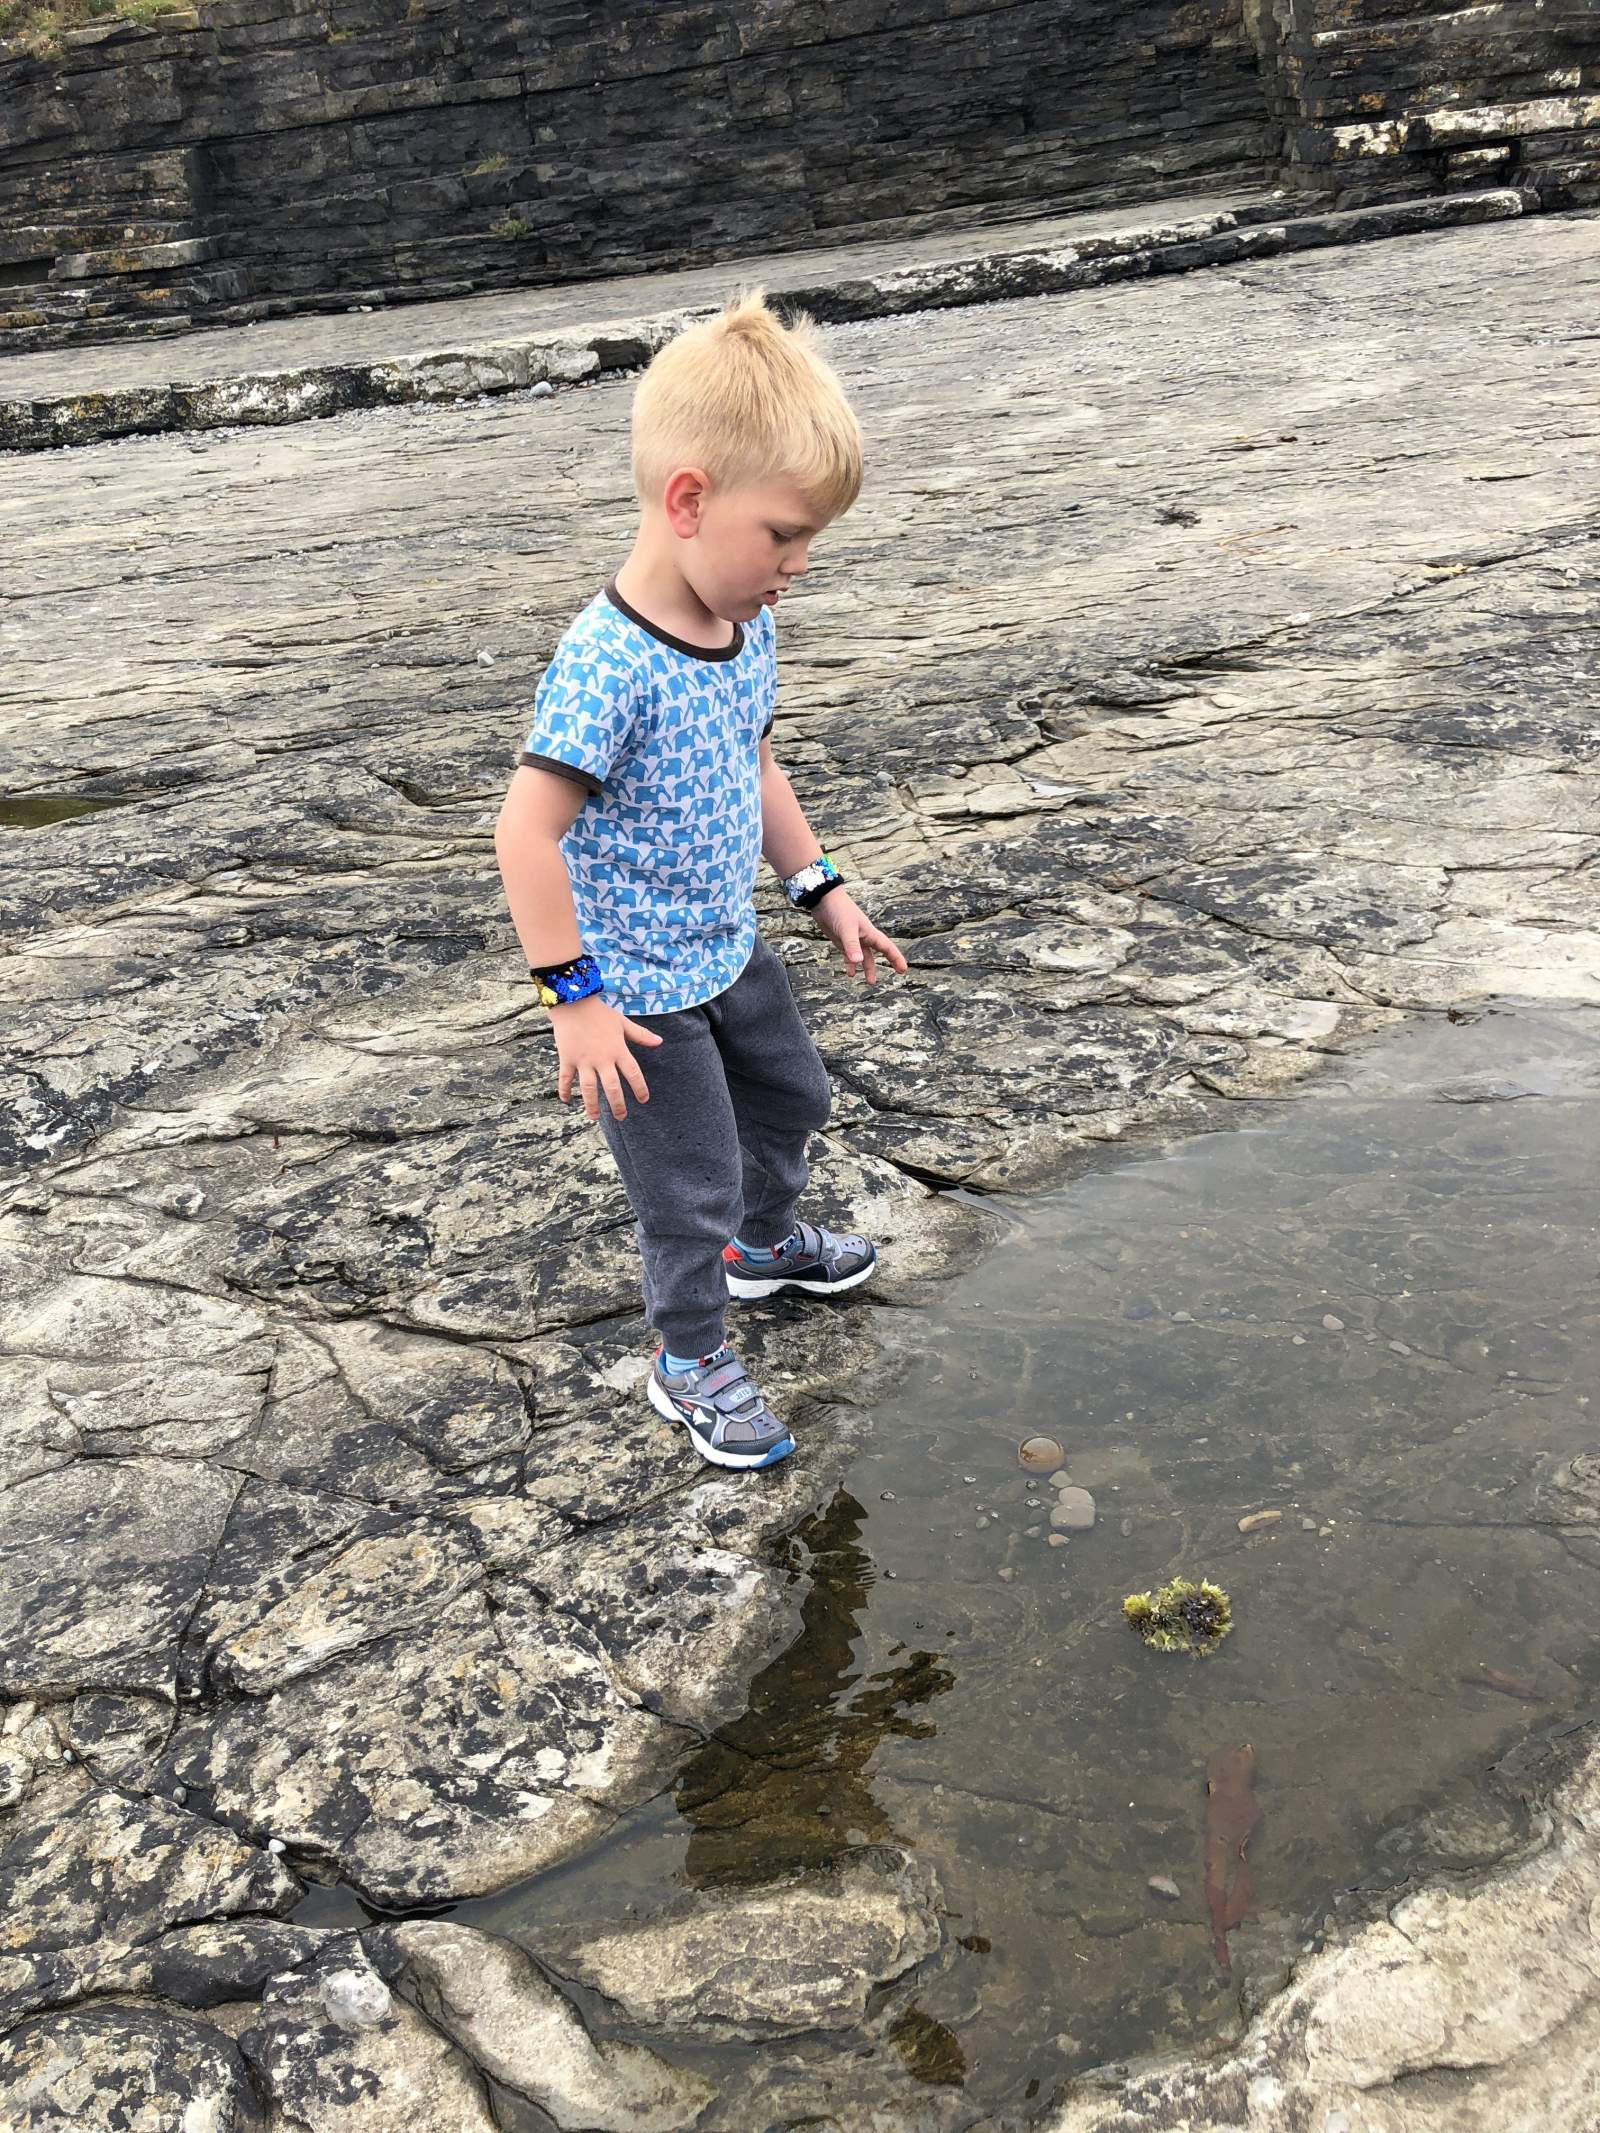 contemplating a dip in a rockpool